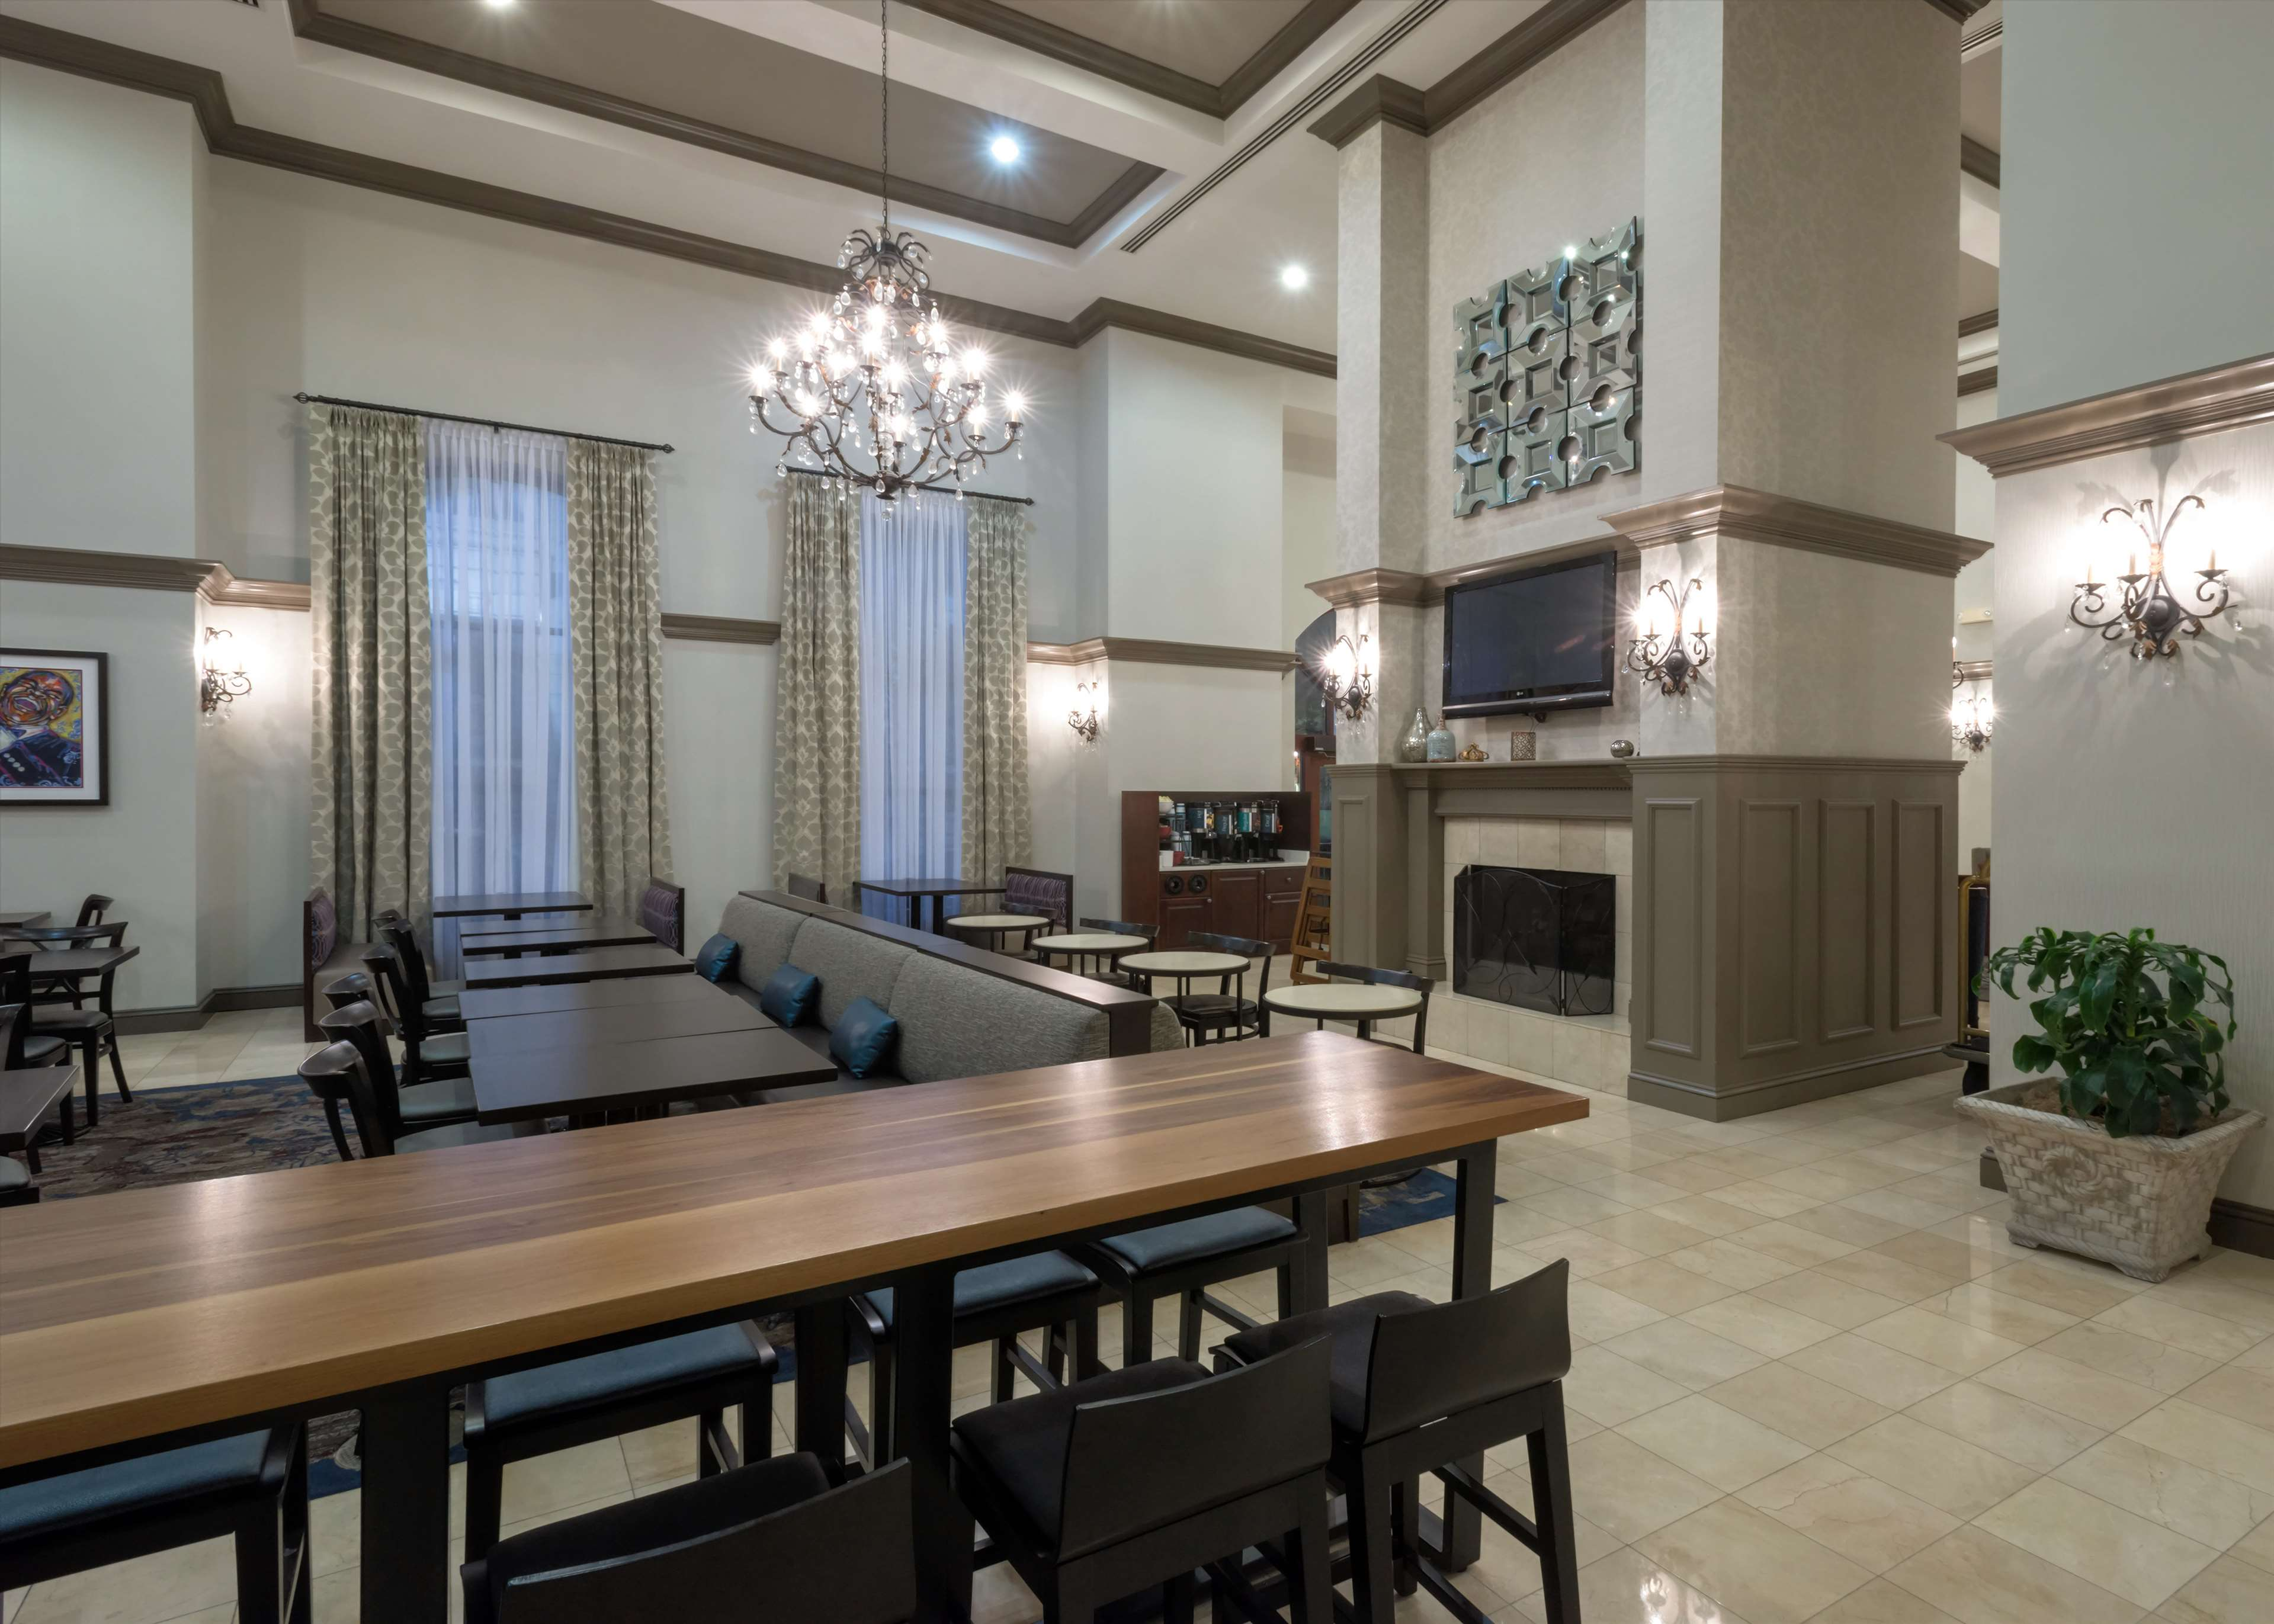 Homewood Suites by Hilton New Orleans image 12